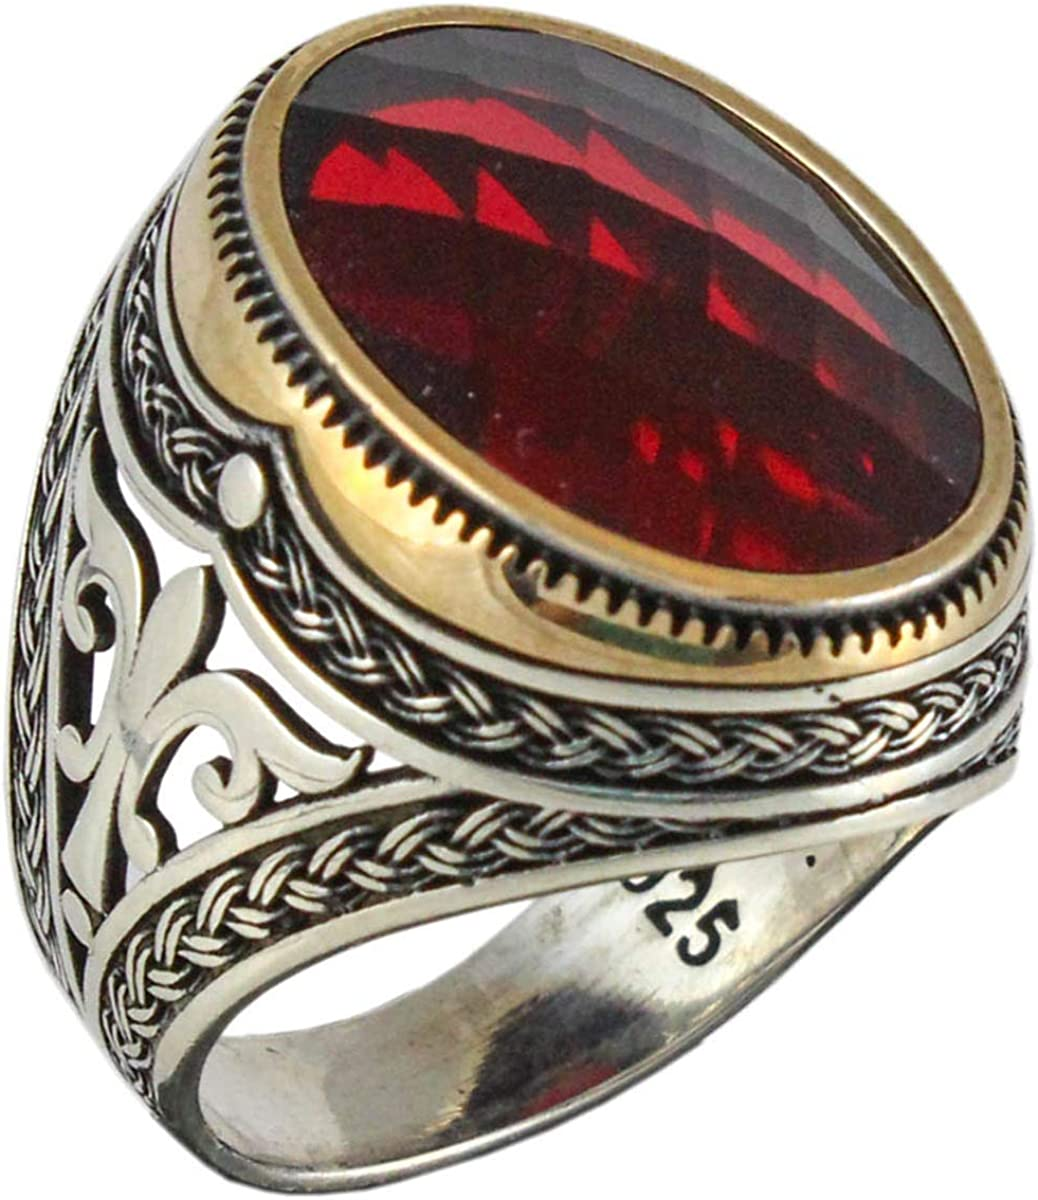 Solid 925 Sterling Silver Cubic Zirconia Stone Ruby Color Luxury Turkish Handmade Men's Ring